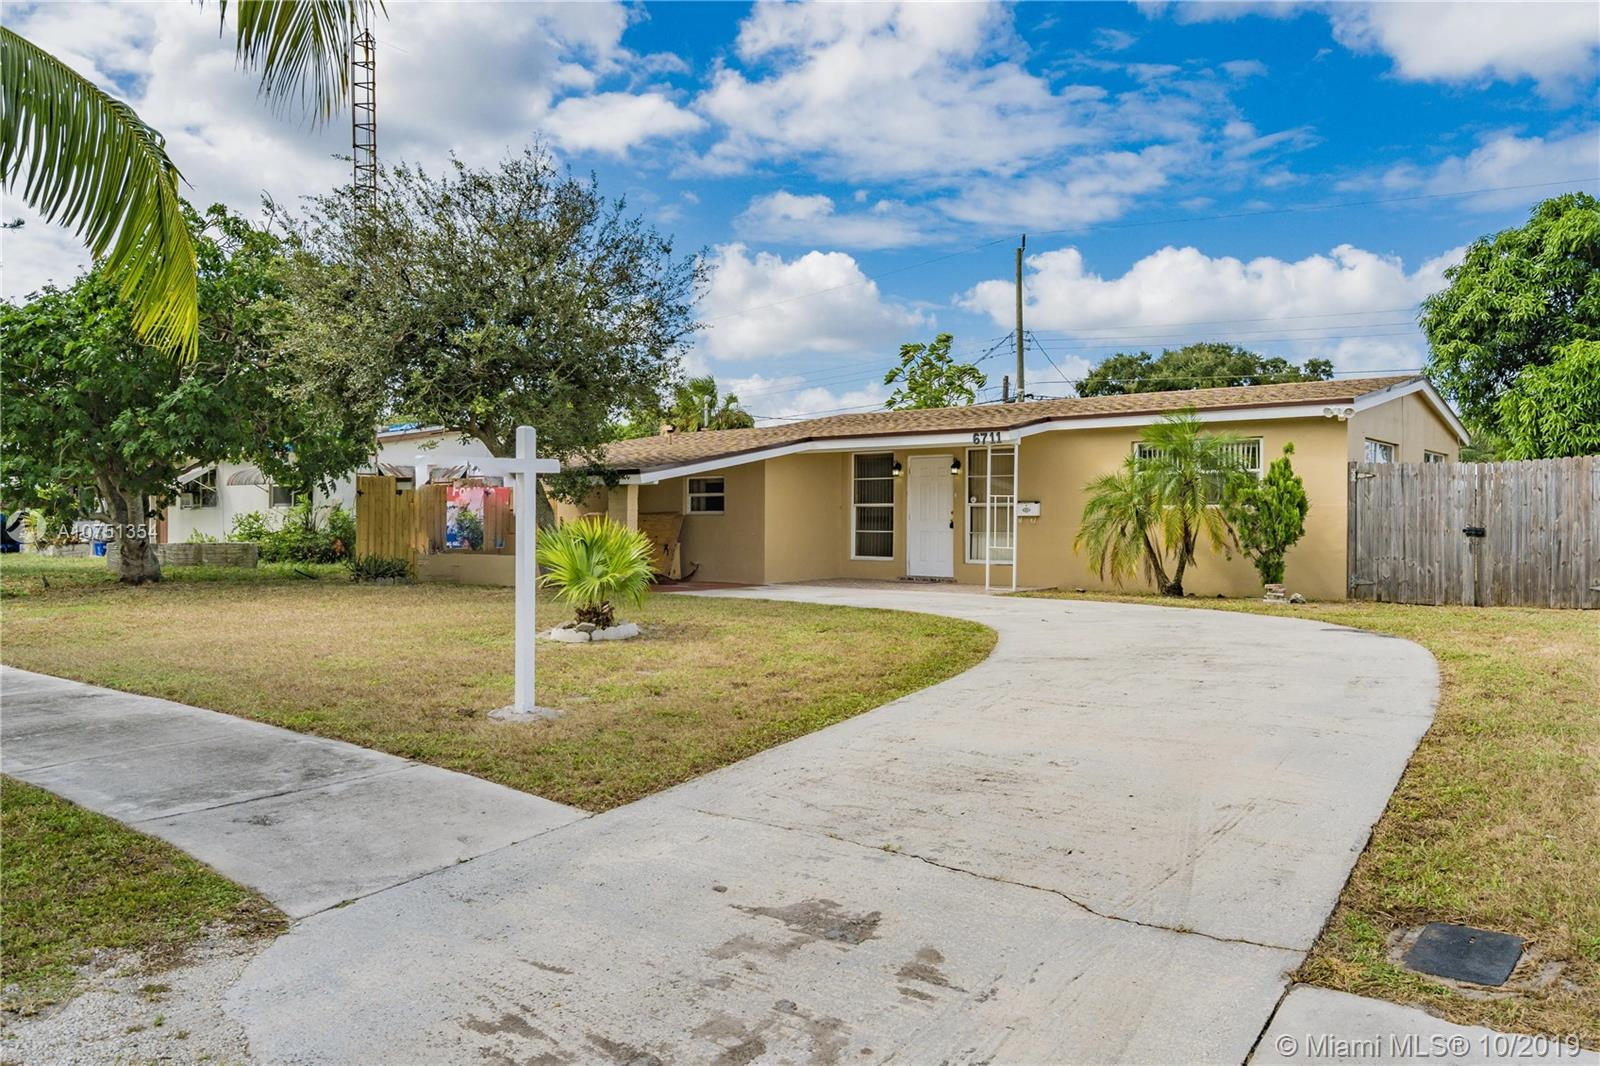 6711  Arthur St  For Sale A10751354, FL